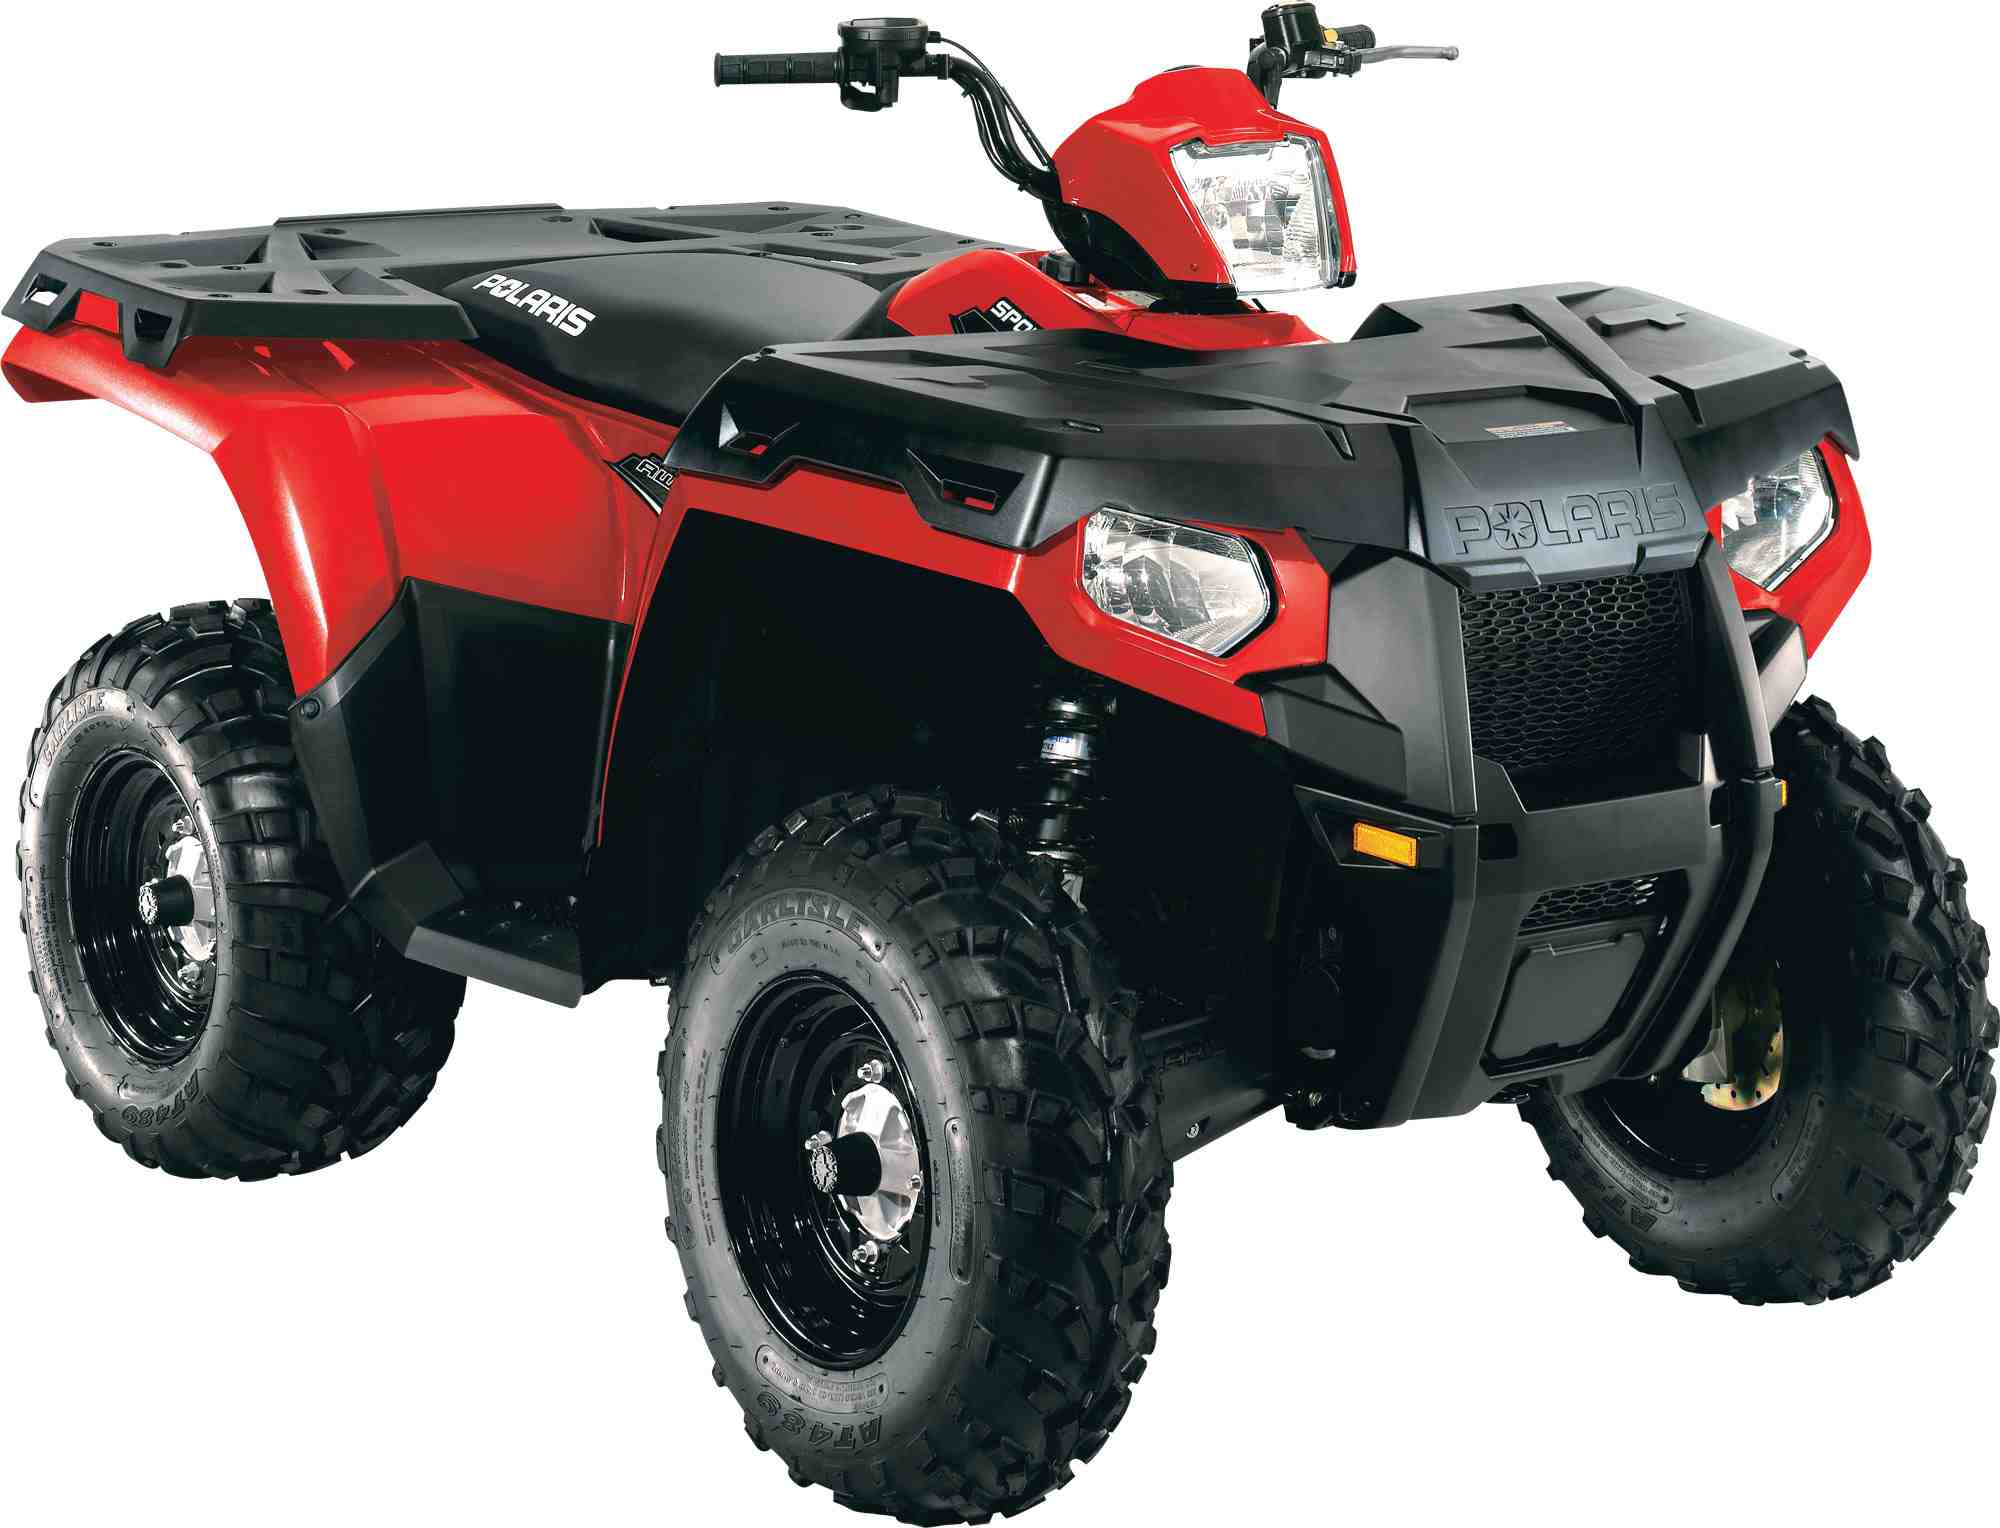 polaris sportsman 400 sportsman 500 xplorer 500 4x4 atv. Black Bedroom Furniture Sets. Home Design Ideas